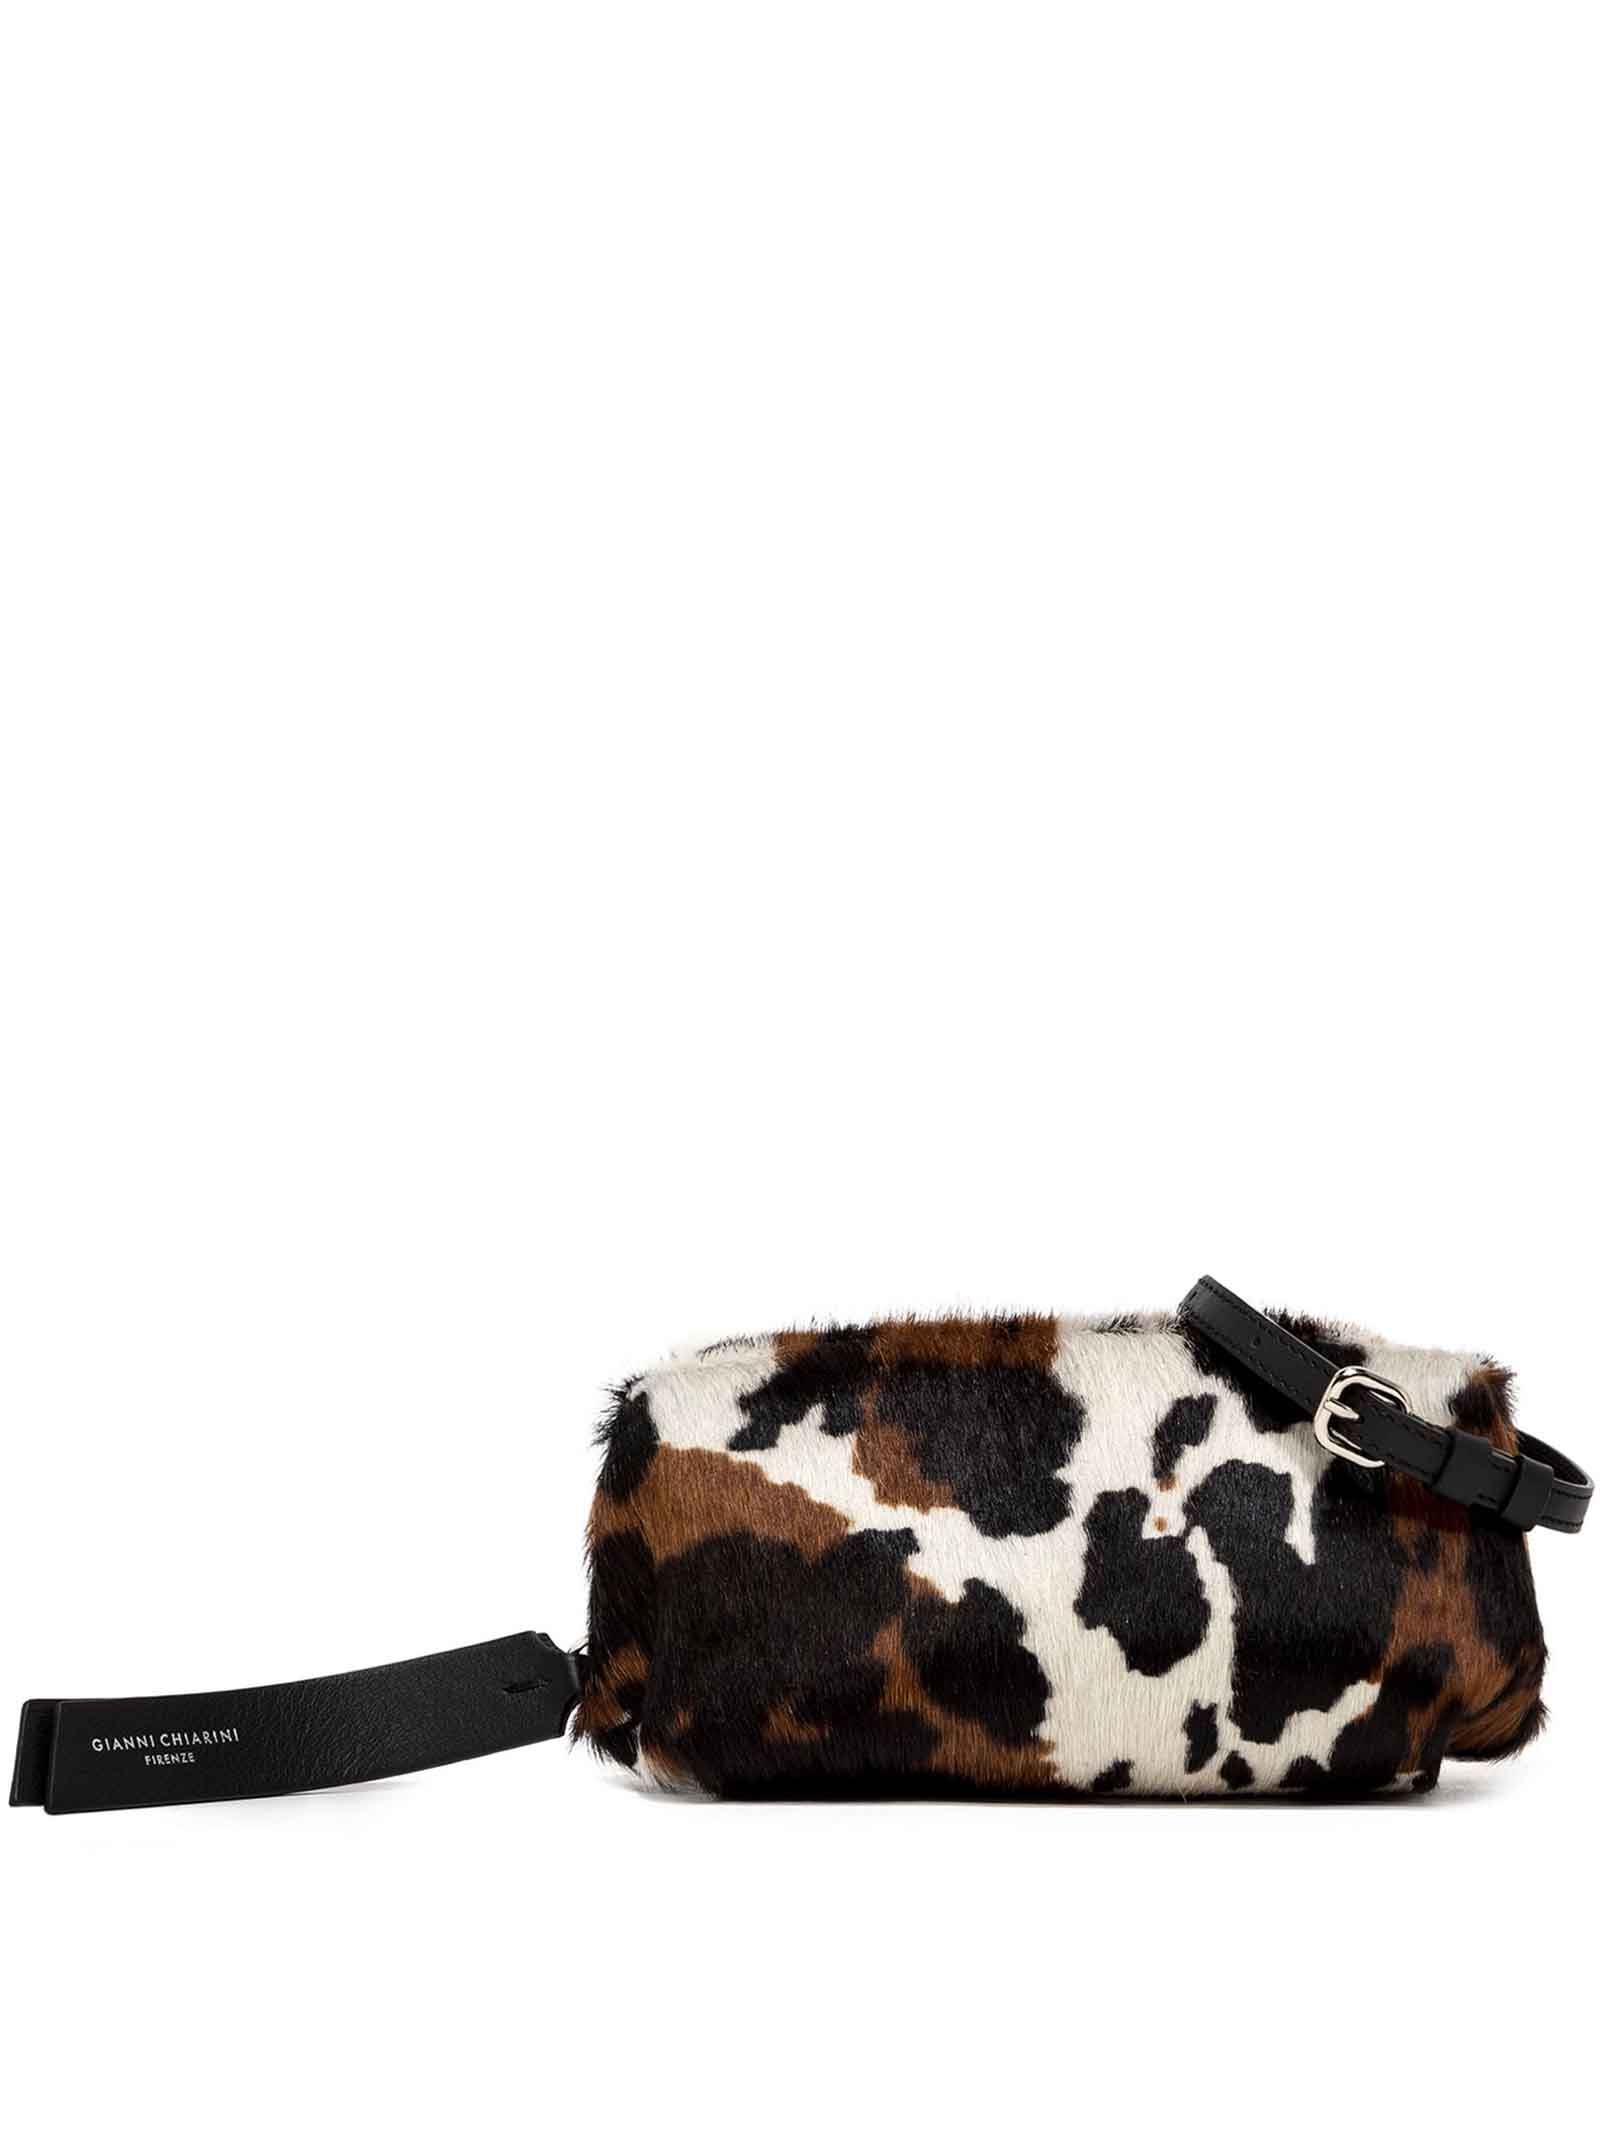 Women's Handbag Colette In Animalier Leather With Black Braided Handle And Adjustable and Detachable Leather Cross-body Strap In Matching Color Gianni Chiarini | Bags and backpacks | BS840412181